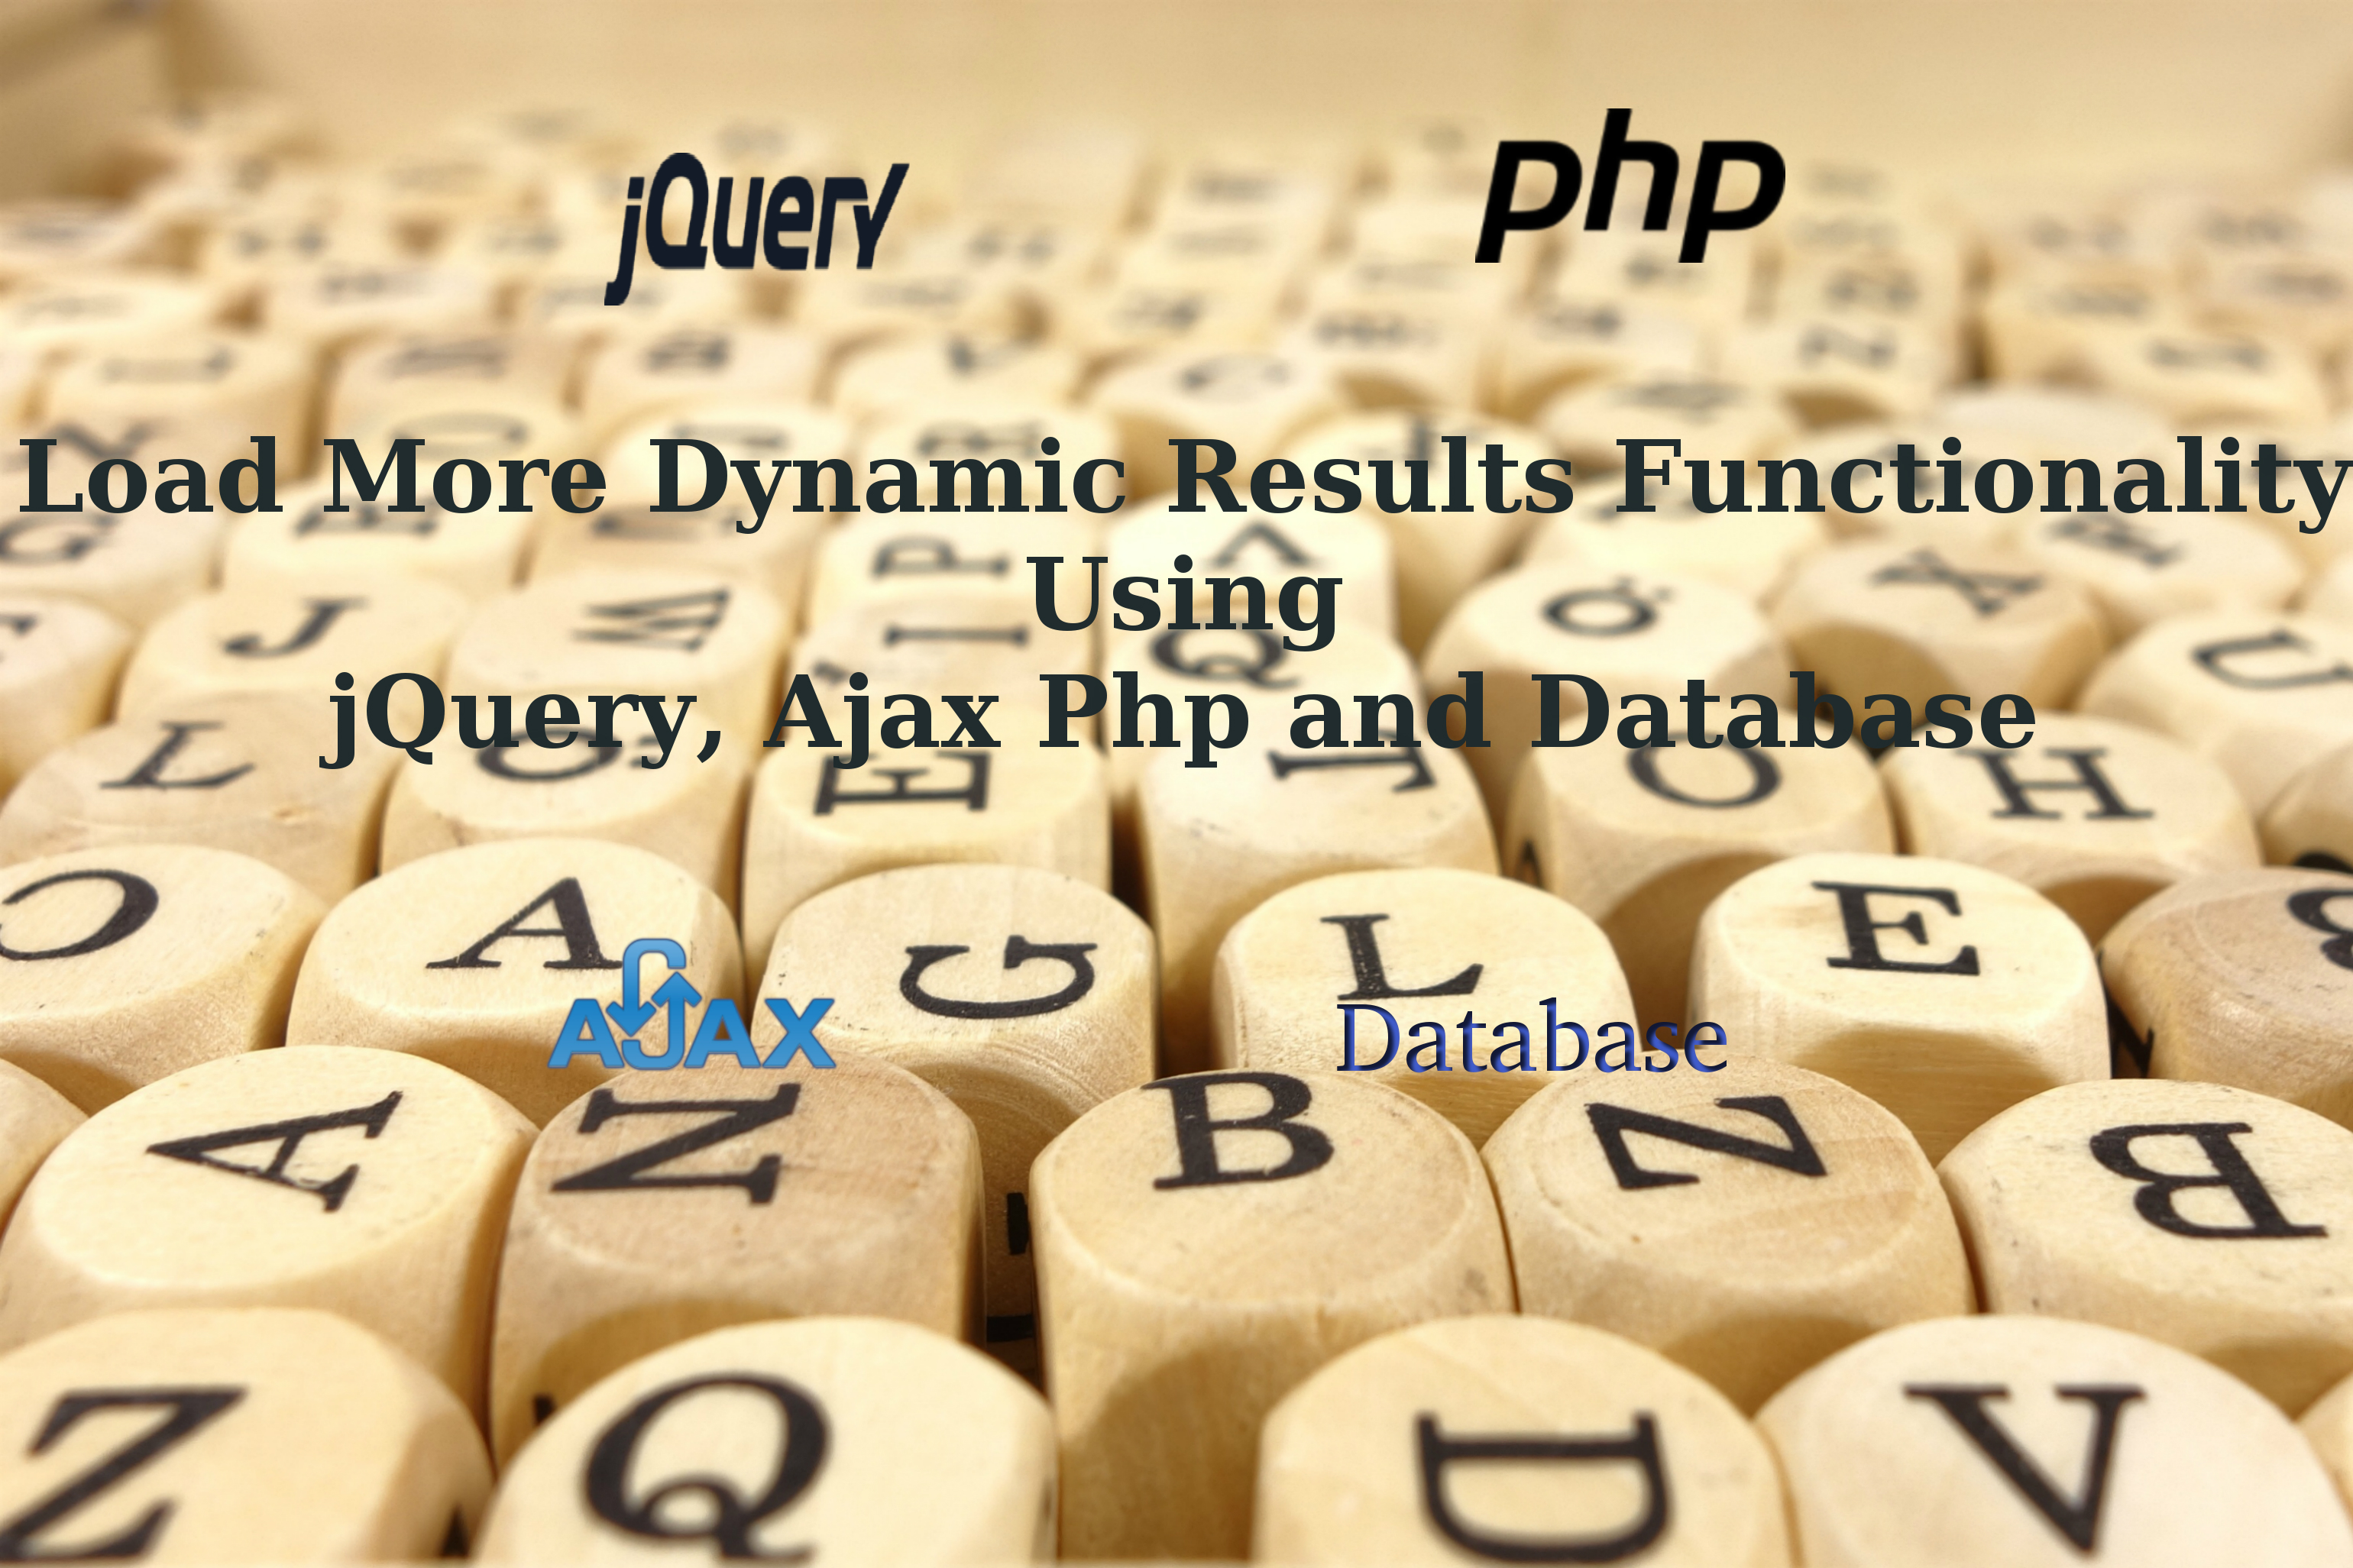 How to implement load more dynamic results functionality using how to implement load more dynamic results functionality using jquery ajax php and database baditri Choice Image